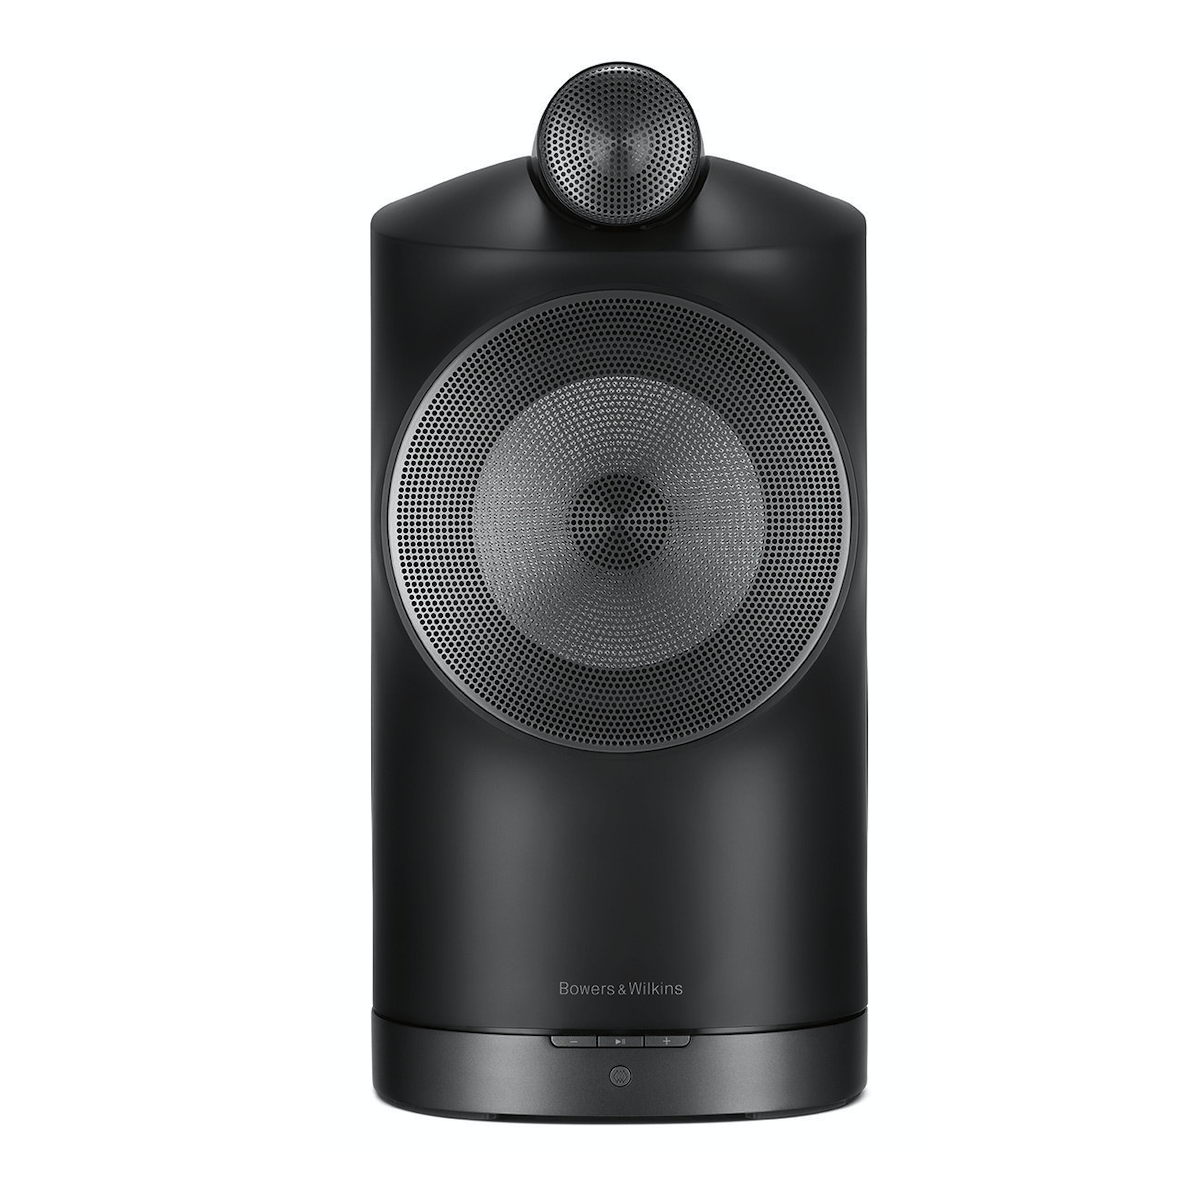 Bowers & Wilkins - Formation Duo - AVStore